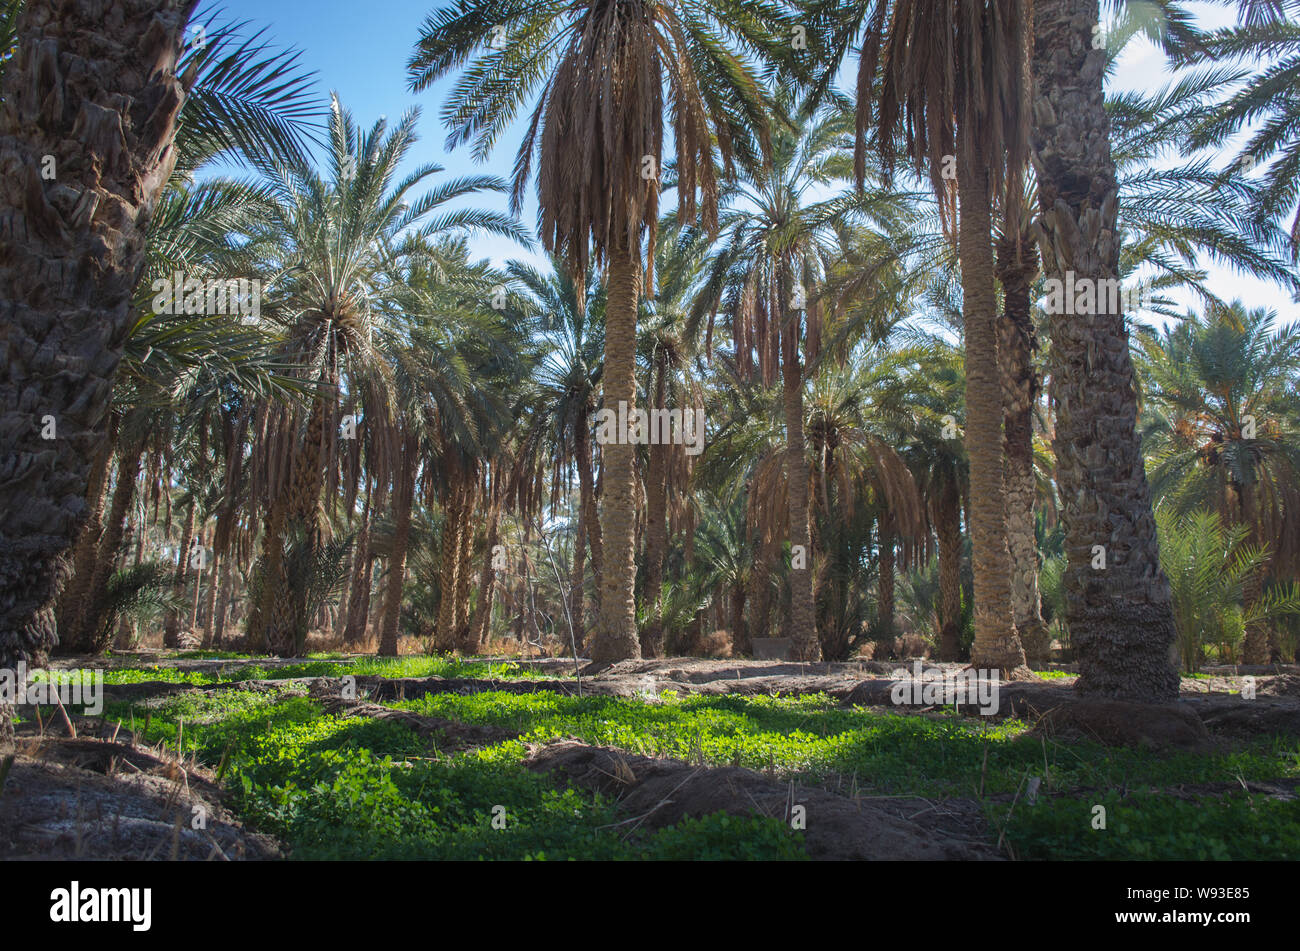 Palm plantation in Nefta oasis, Tunisia. The date palm trees growing in Sahara Desert in oasis Stock Photo